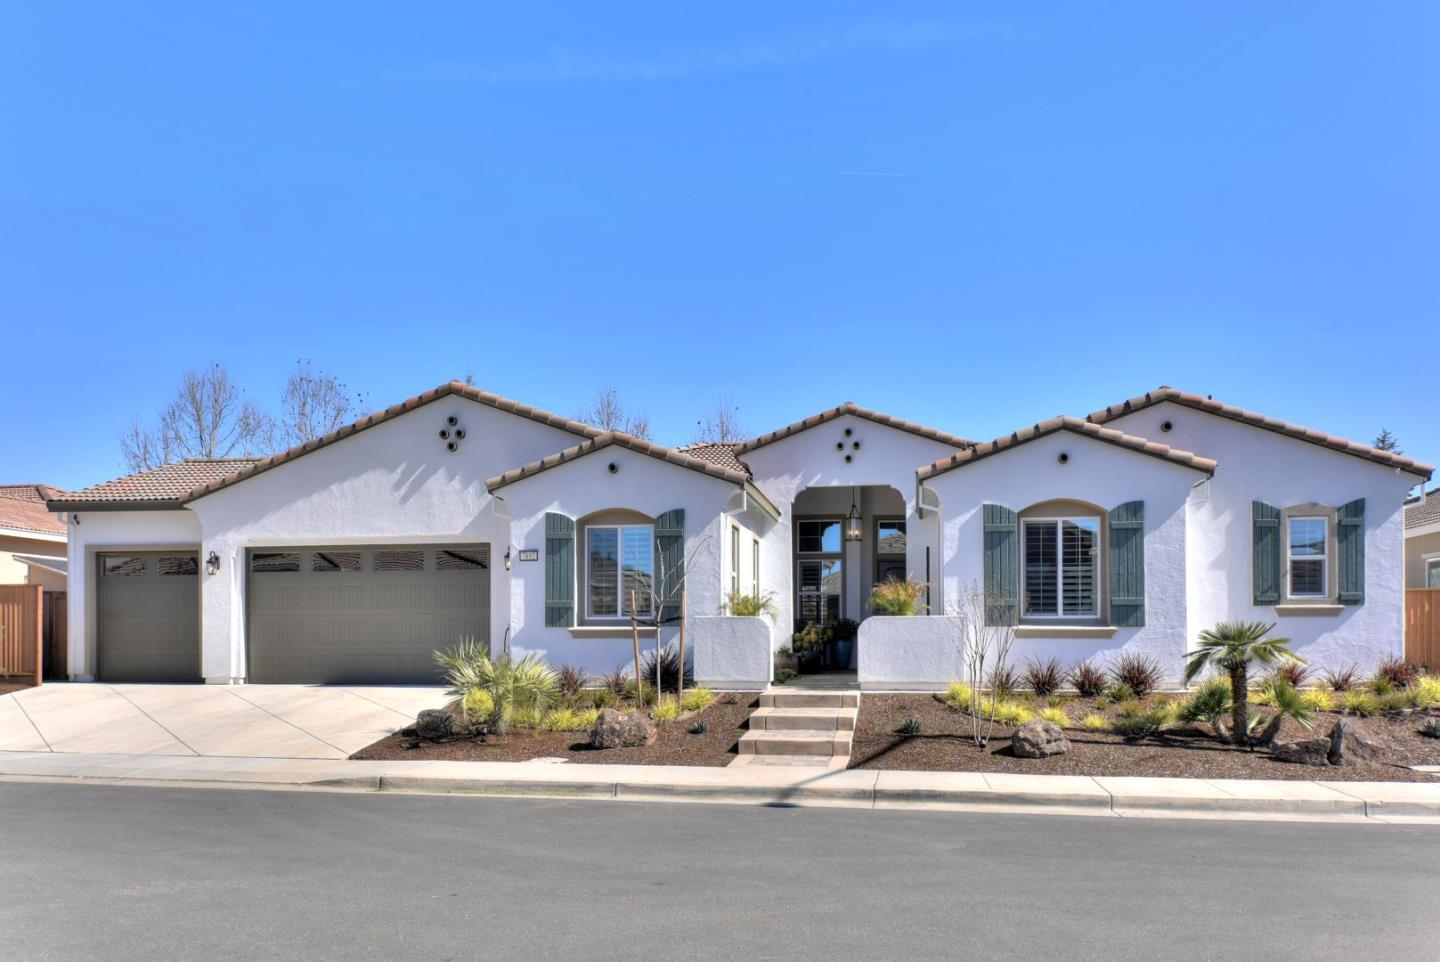 Photo for 7852 Cinnamon WAY, GILROY, CA 95020 (MLS # ML81745163)